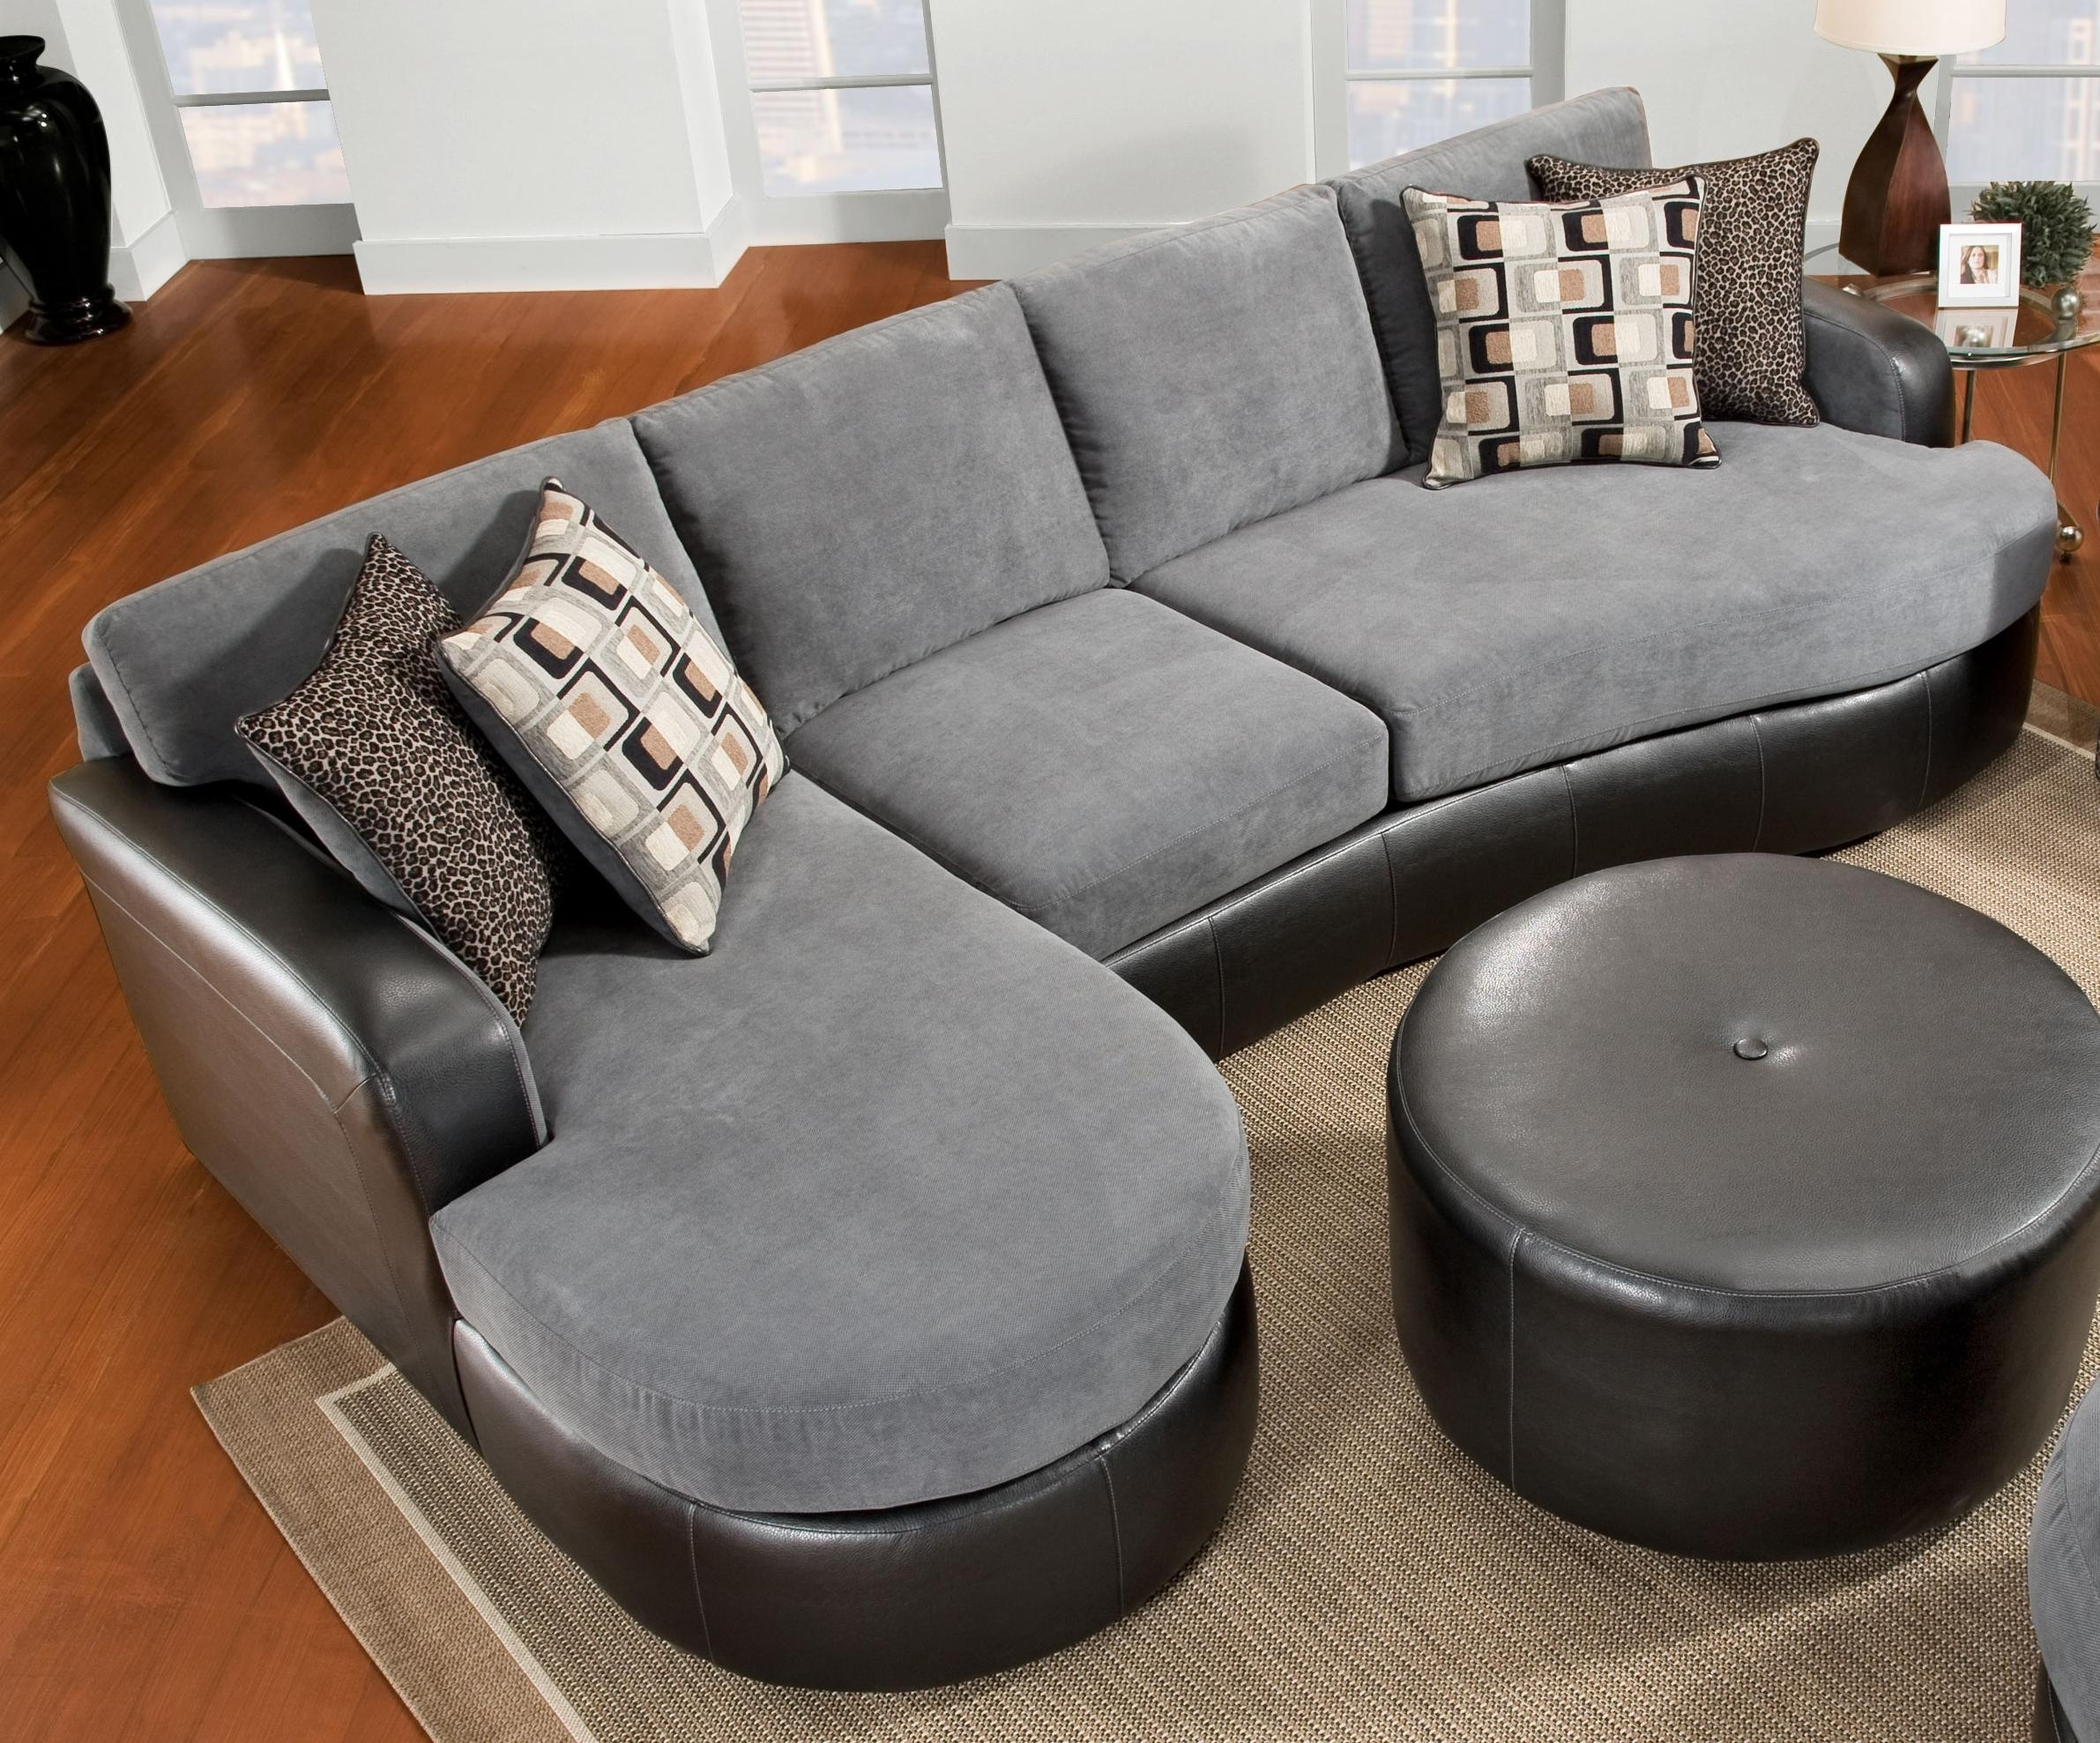 Elegant Chic Gray Velvet And Black Leather Sectional Sofa With F within Black Leather Sectionals With Ottoman (Image 7 of 15)